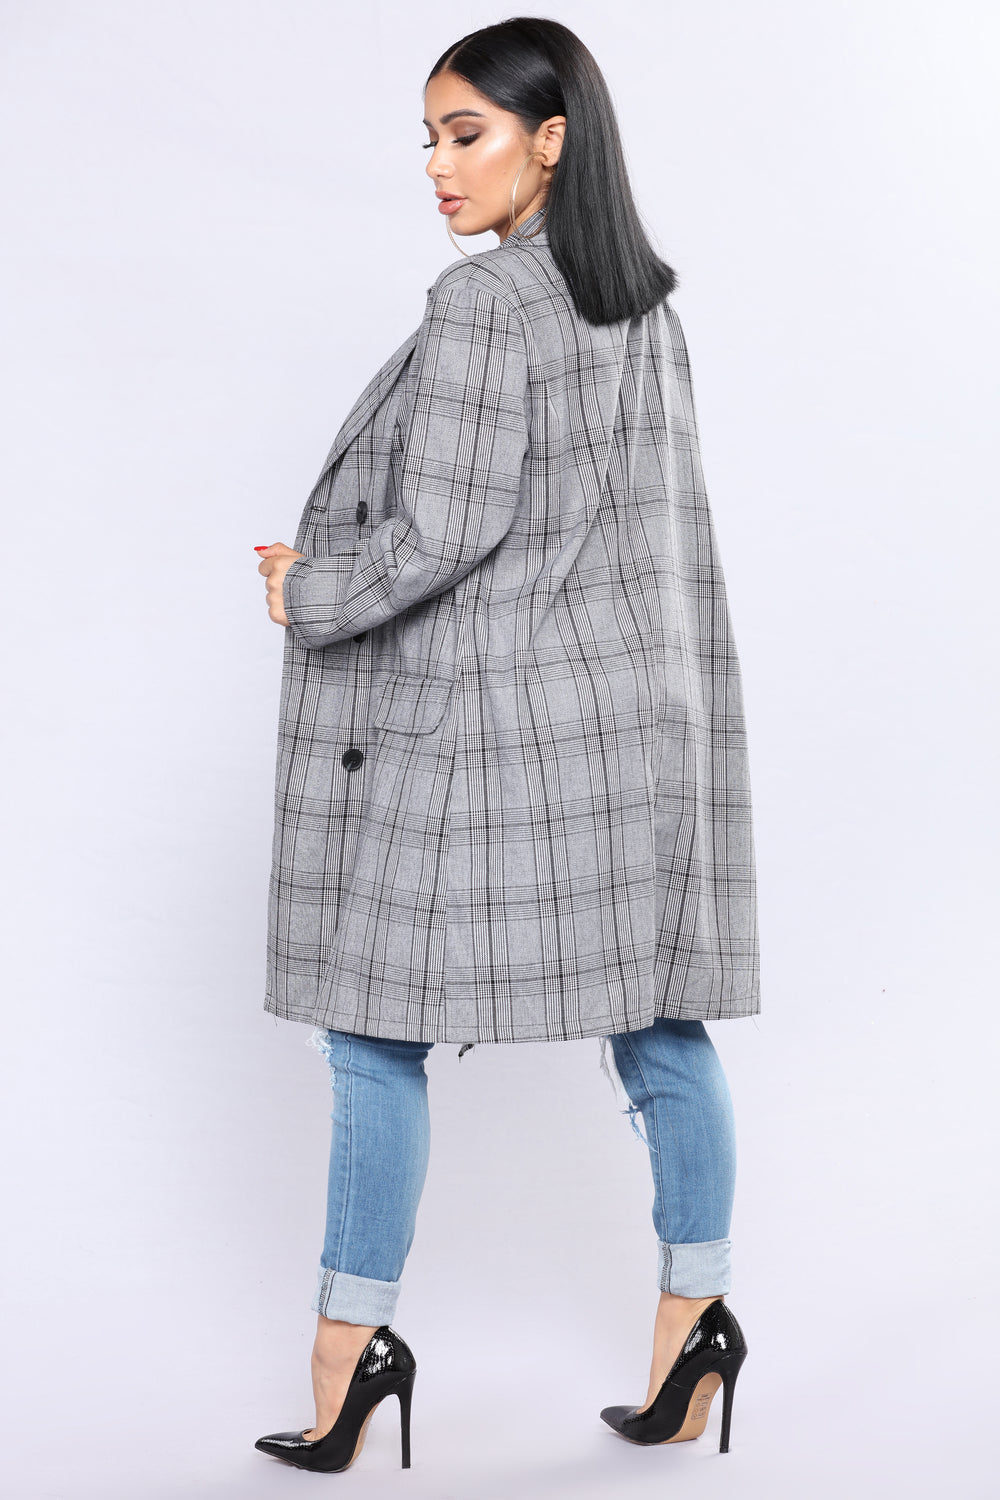 Dress Code Plaid Jacket - Black/White